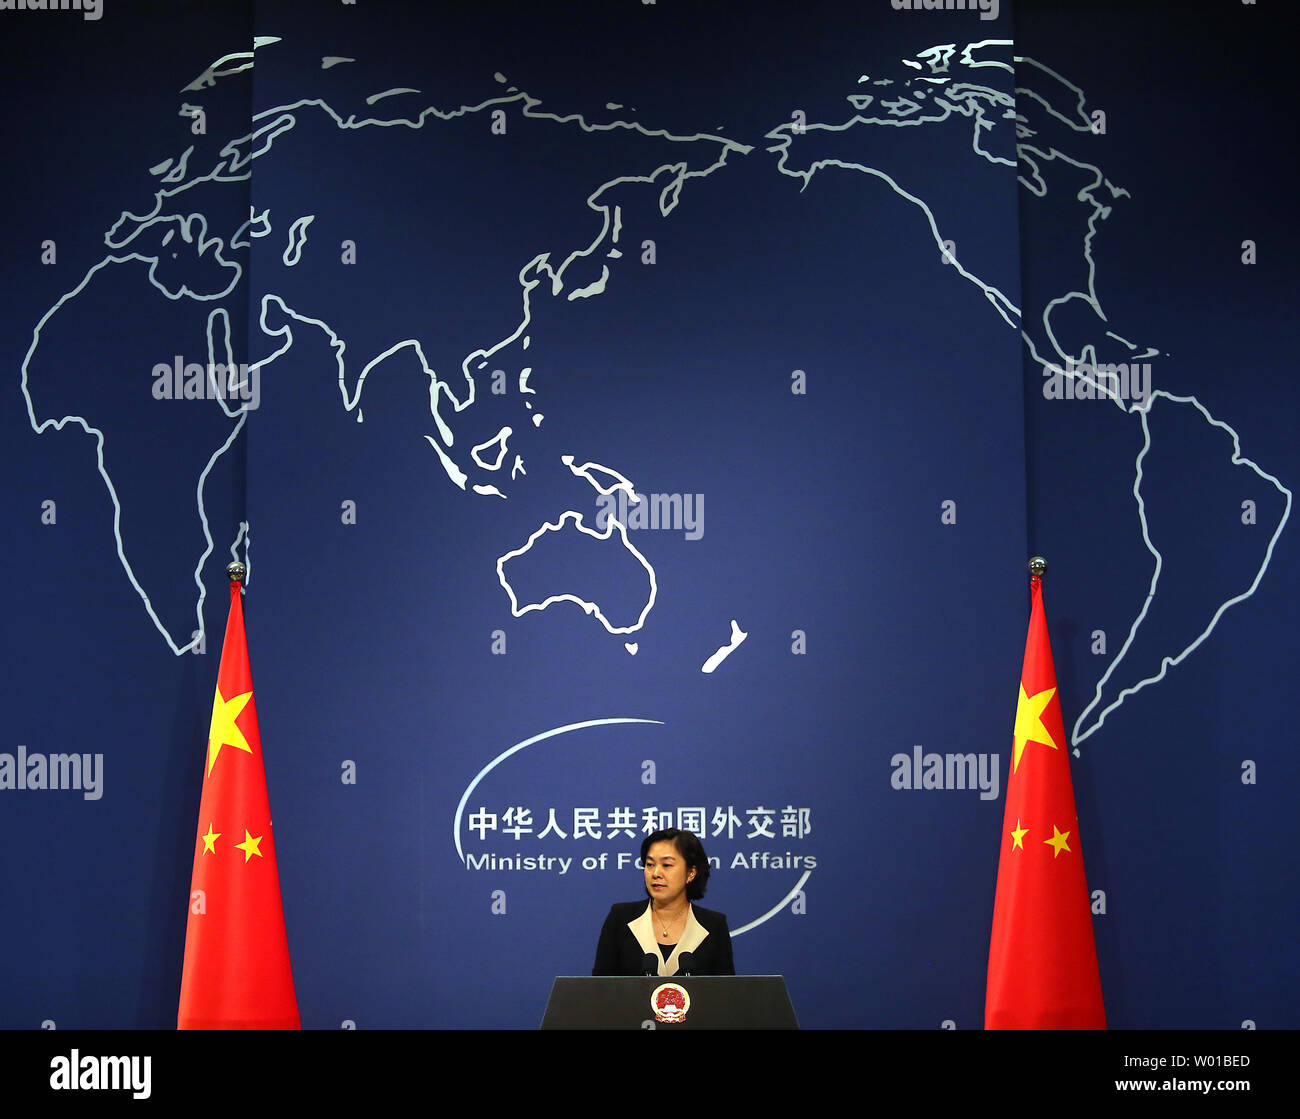 Chinese Foreign Ministry spokesman Hua Chunying answers questions from both domestic and foreign press during a news briefing in Beijing on August 29, 2016.  China condemned Japan for sowing discord between China and Africa in its attempt to derail a summit by discussing maritime security issues.    Photo by Stephen Shaver/UPI - Stock Image